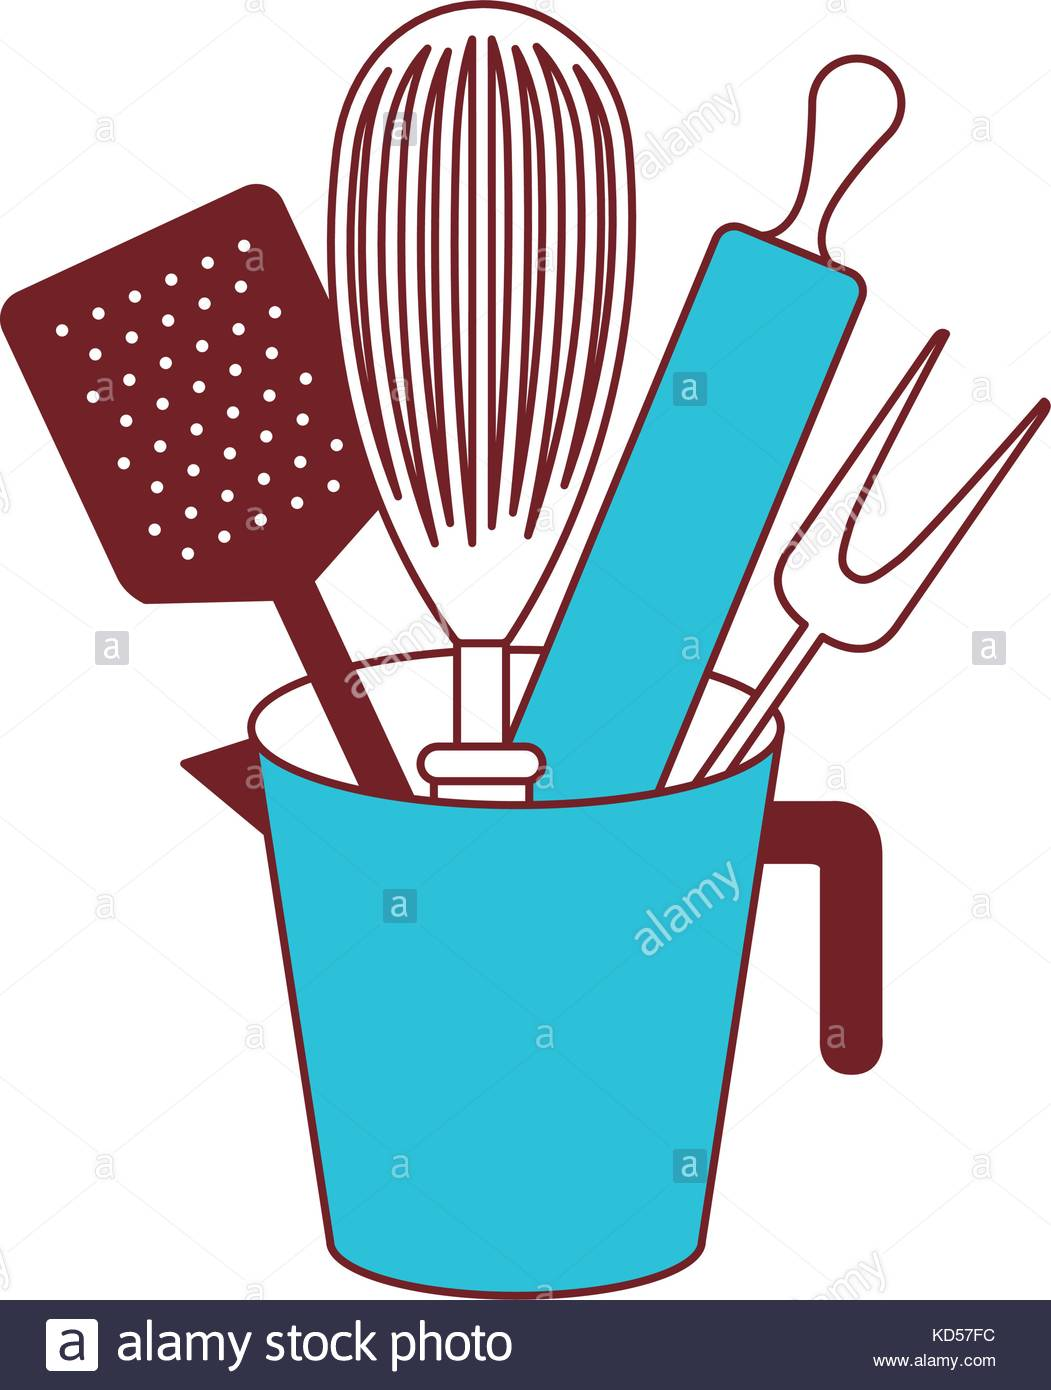 Kitchen Utensil Silhouette at GetDrawings.com | Free for personal ...